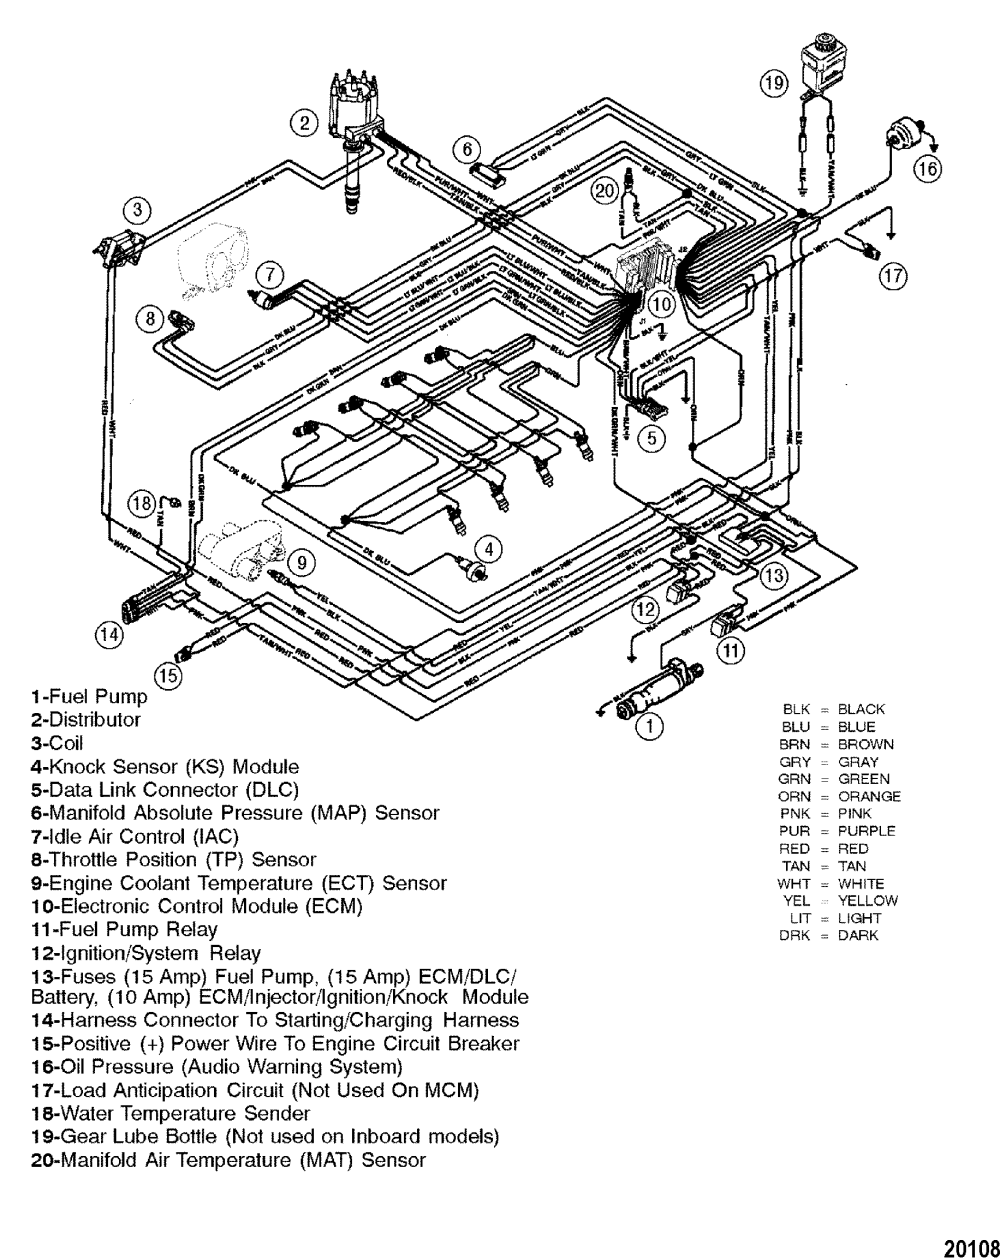 medium resolution of 5 7 mercruiser wiring diagram wiring diagram schematics mercruiser starter solenoid wiring diagram 5 7 mercruiser starter wiring diagram